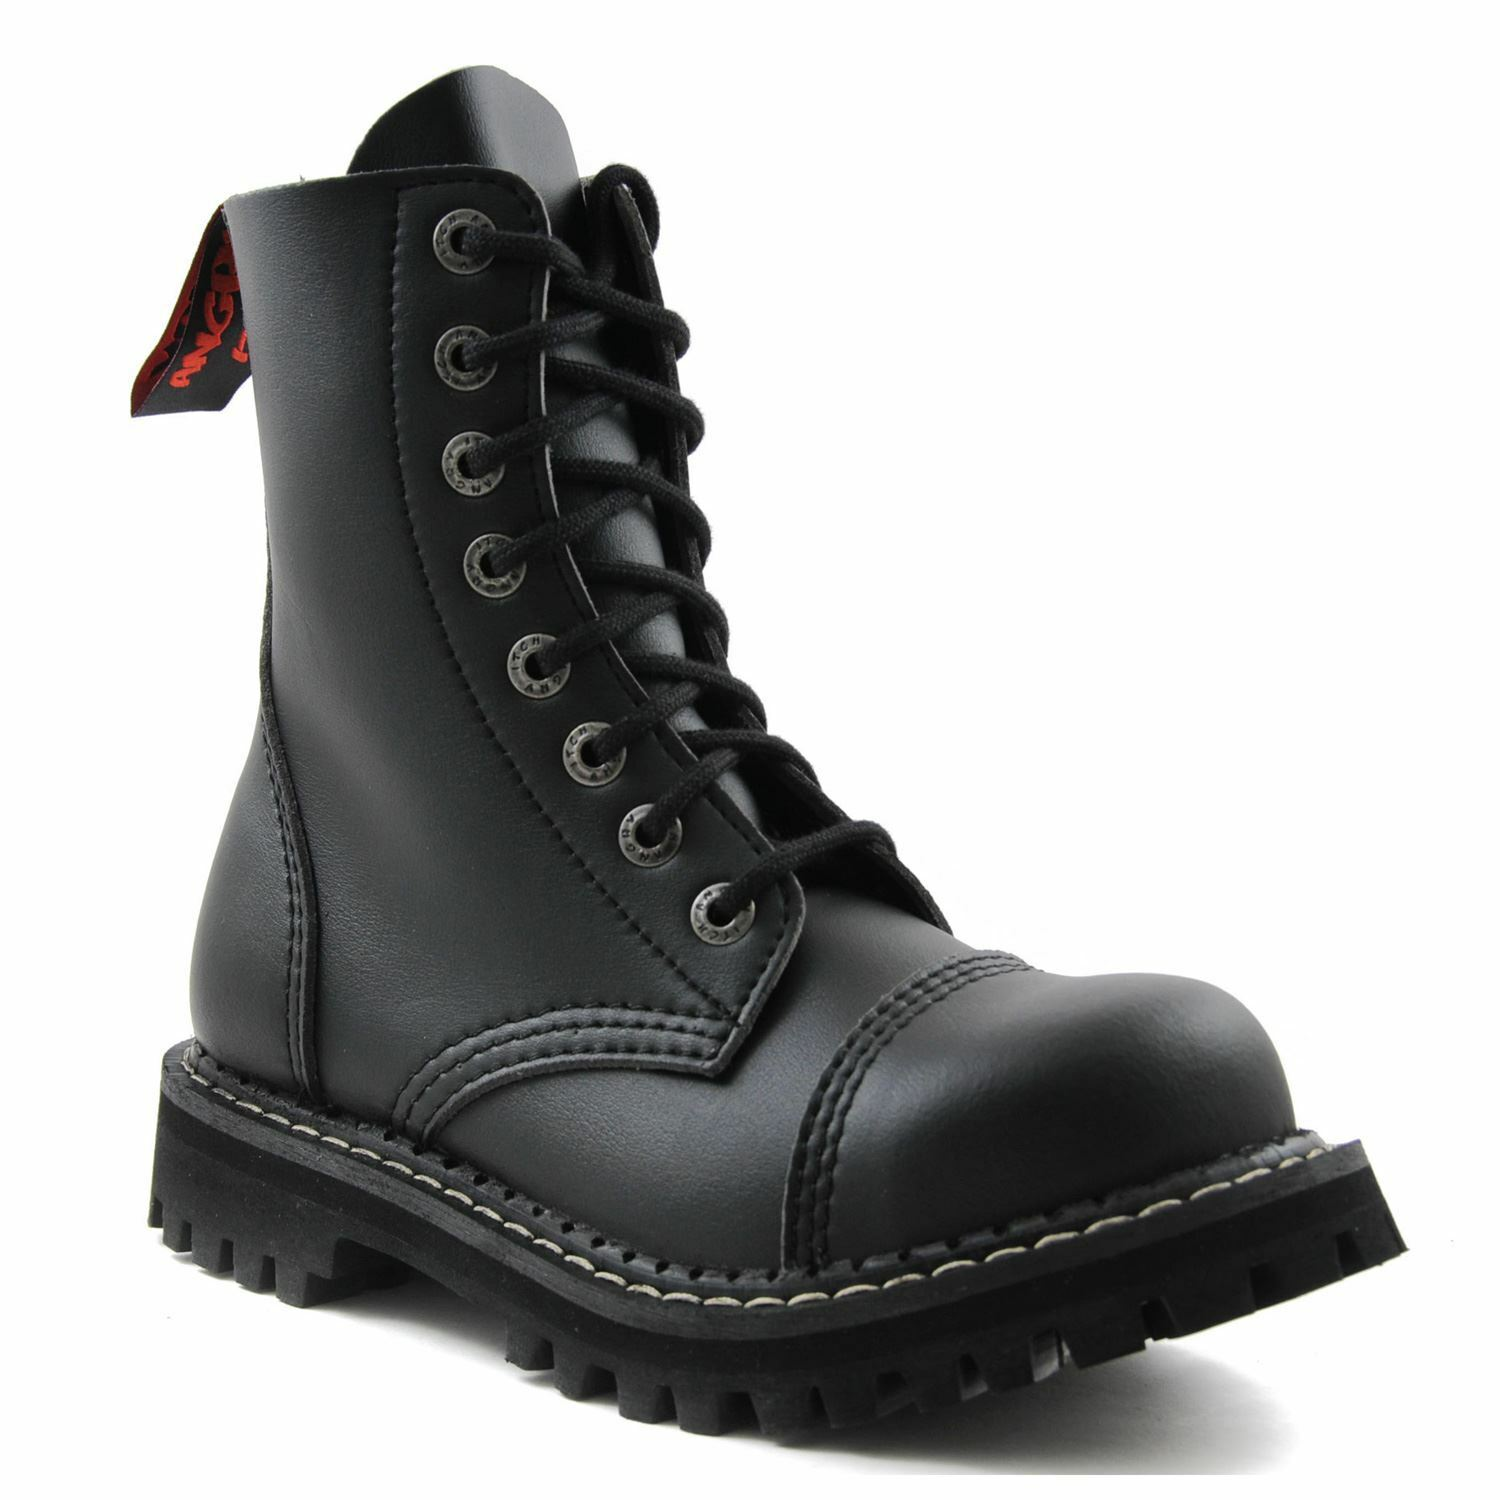 Angry Itch 8 Hole Black Combat Vegan Leather Army Ranger Boots Steel Toe Safety